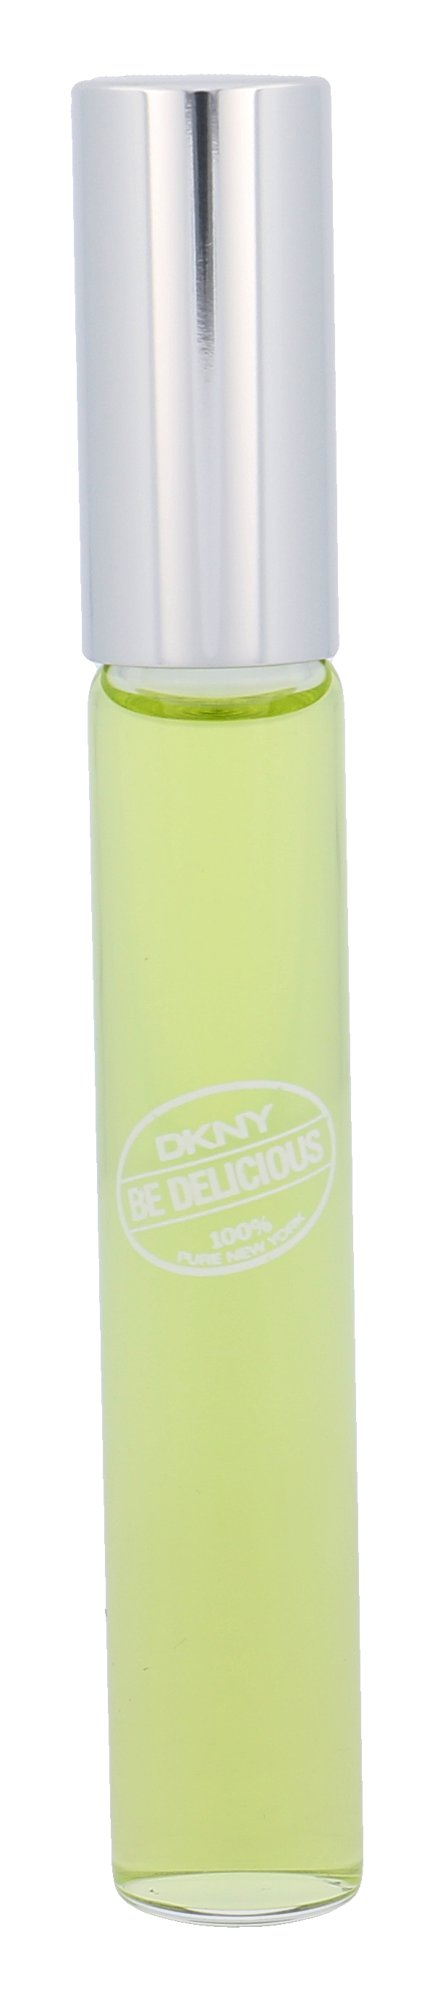 DKNY Donna Karan Be Delicious EDP MINI 10 ml W